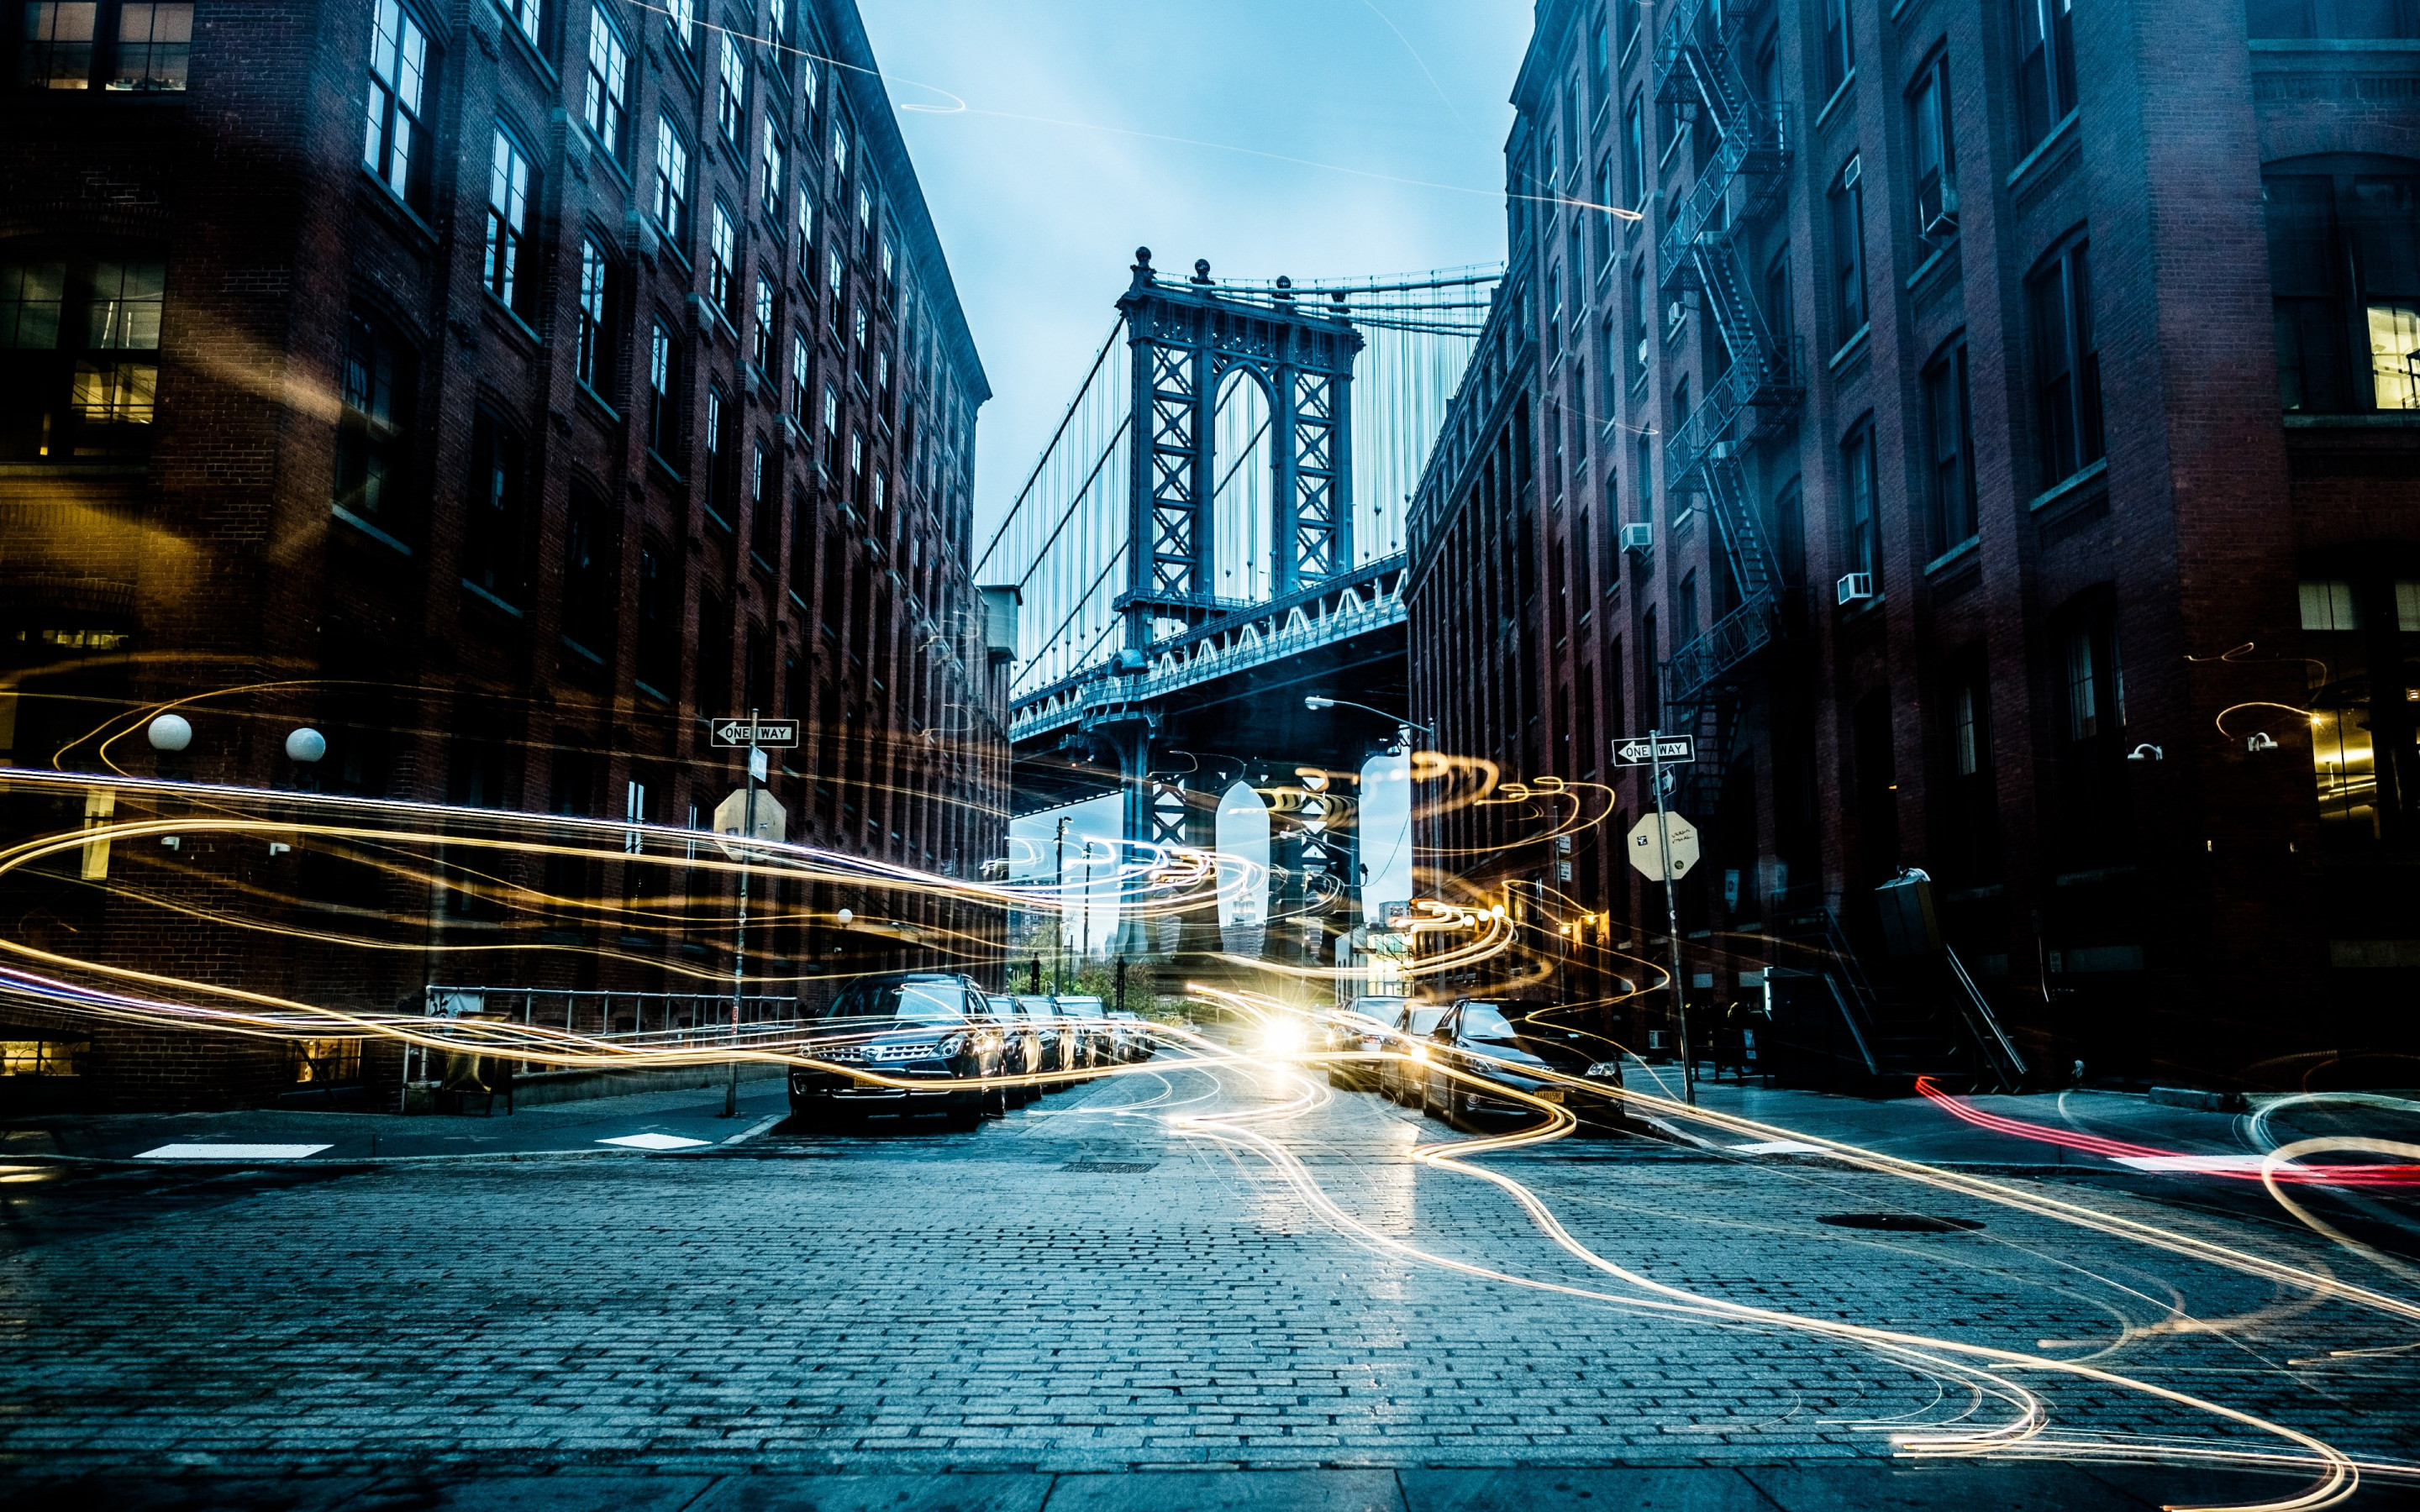 Light painting on New York streets | 2880x1800 wallpaper